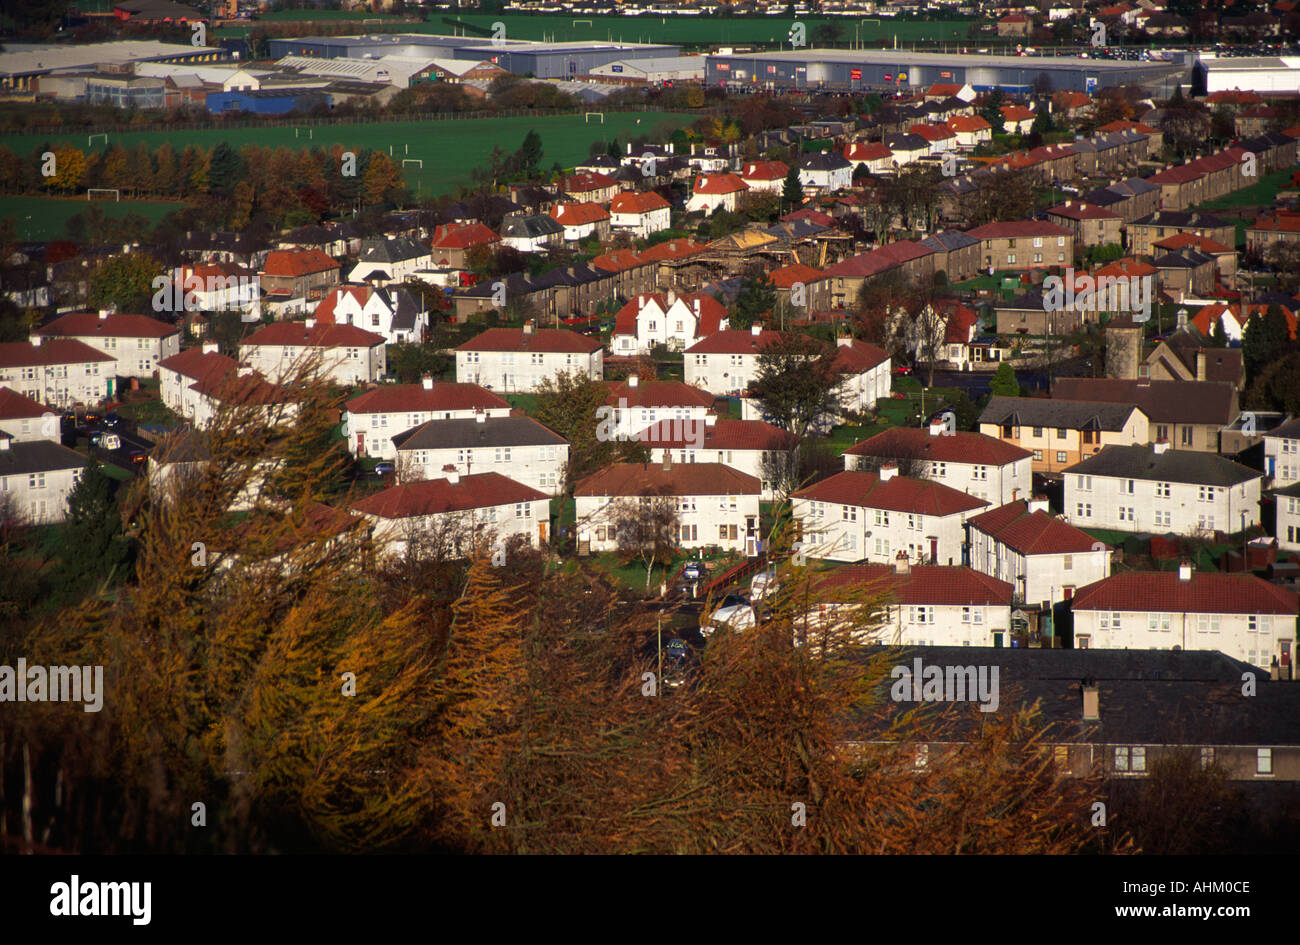 Old jute mills and housing Dundee from Dundee Law Scotland - Stock Image